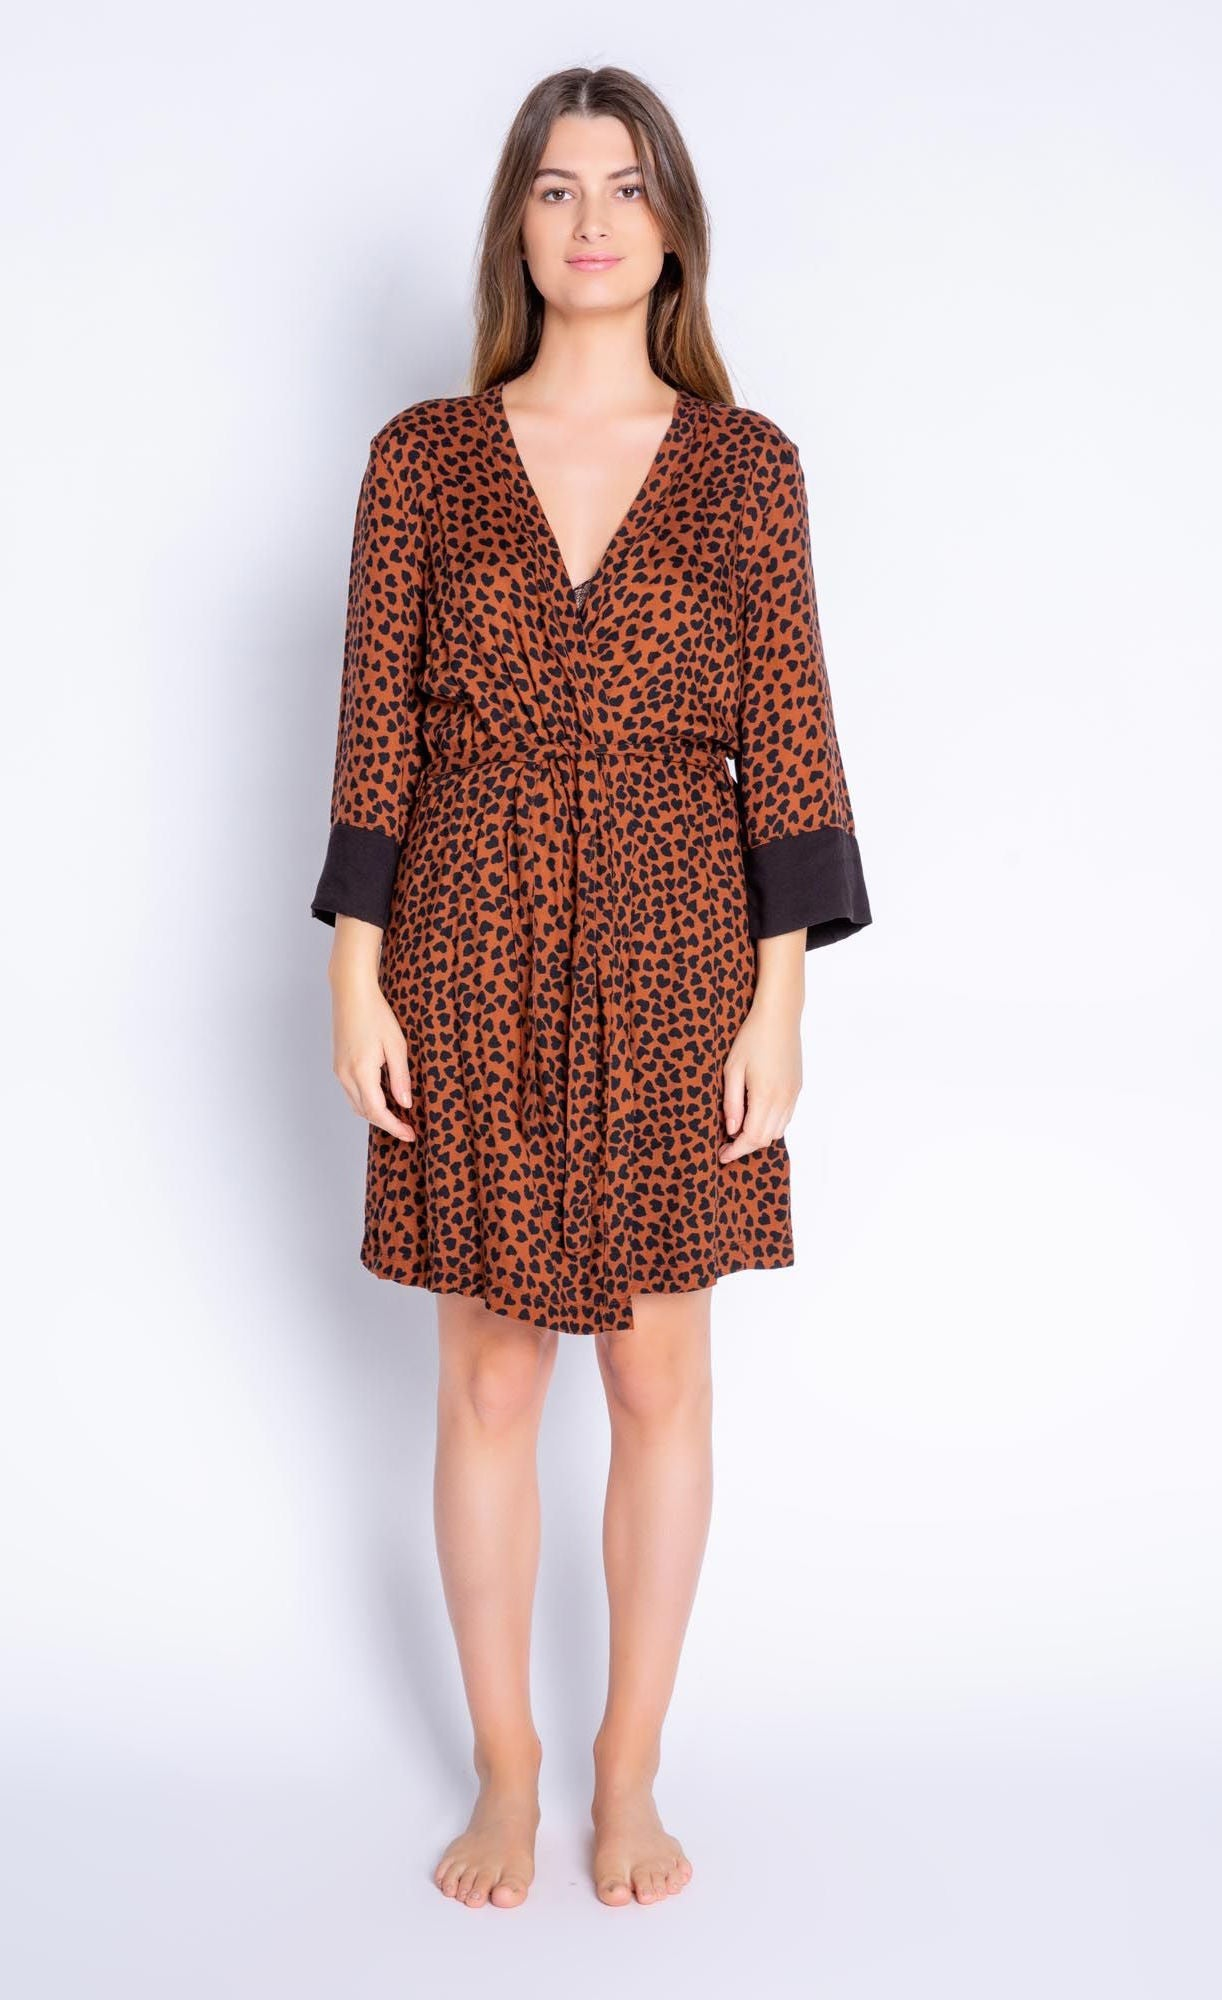 Front full body view of woman wearing the PJ Salvage Wild Love Robe. This short, mocha/brown colored robe has a heart shaped animal print all over it, contrasting black sleeves, and a belt at the waist.